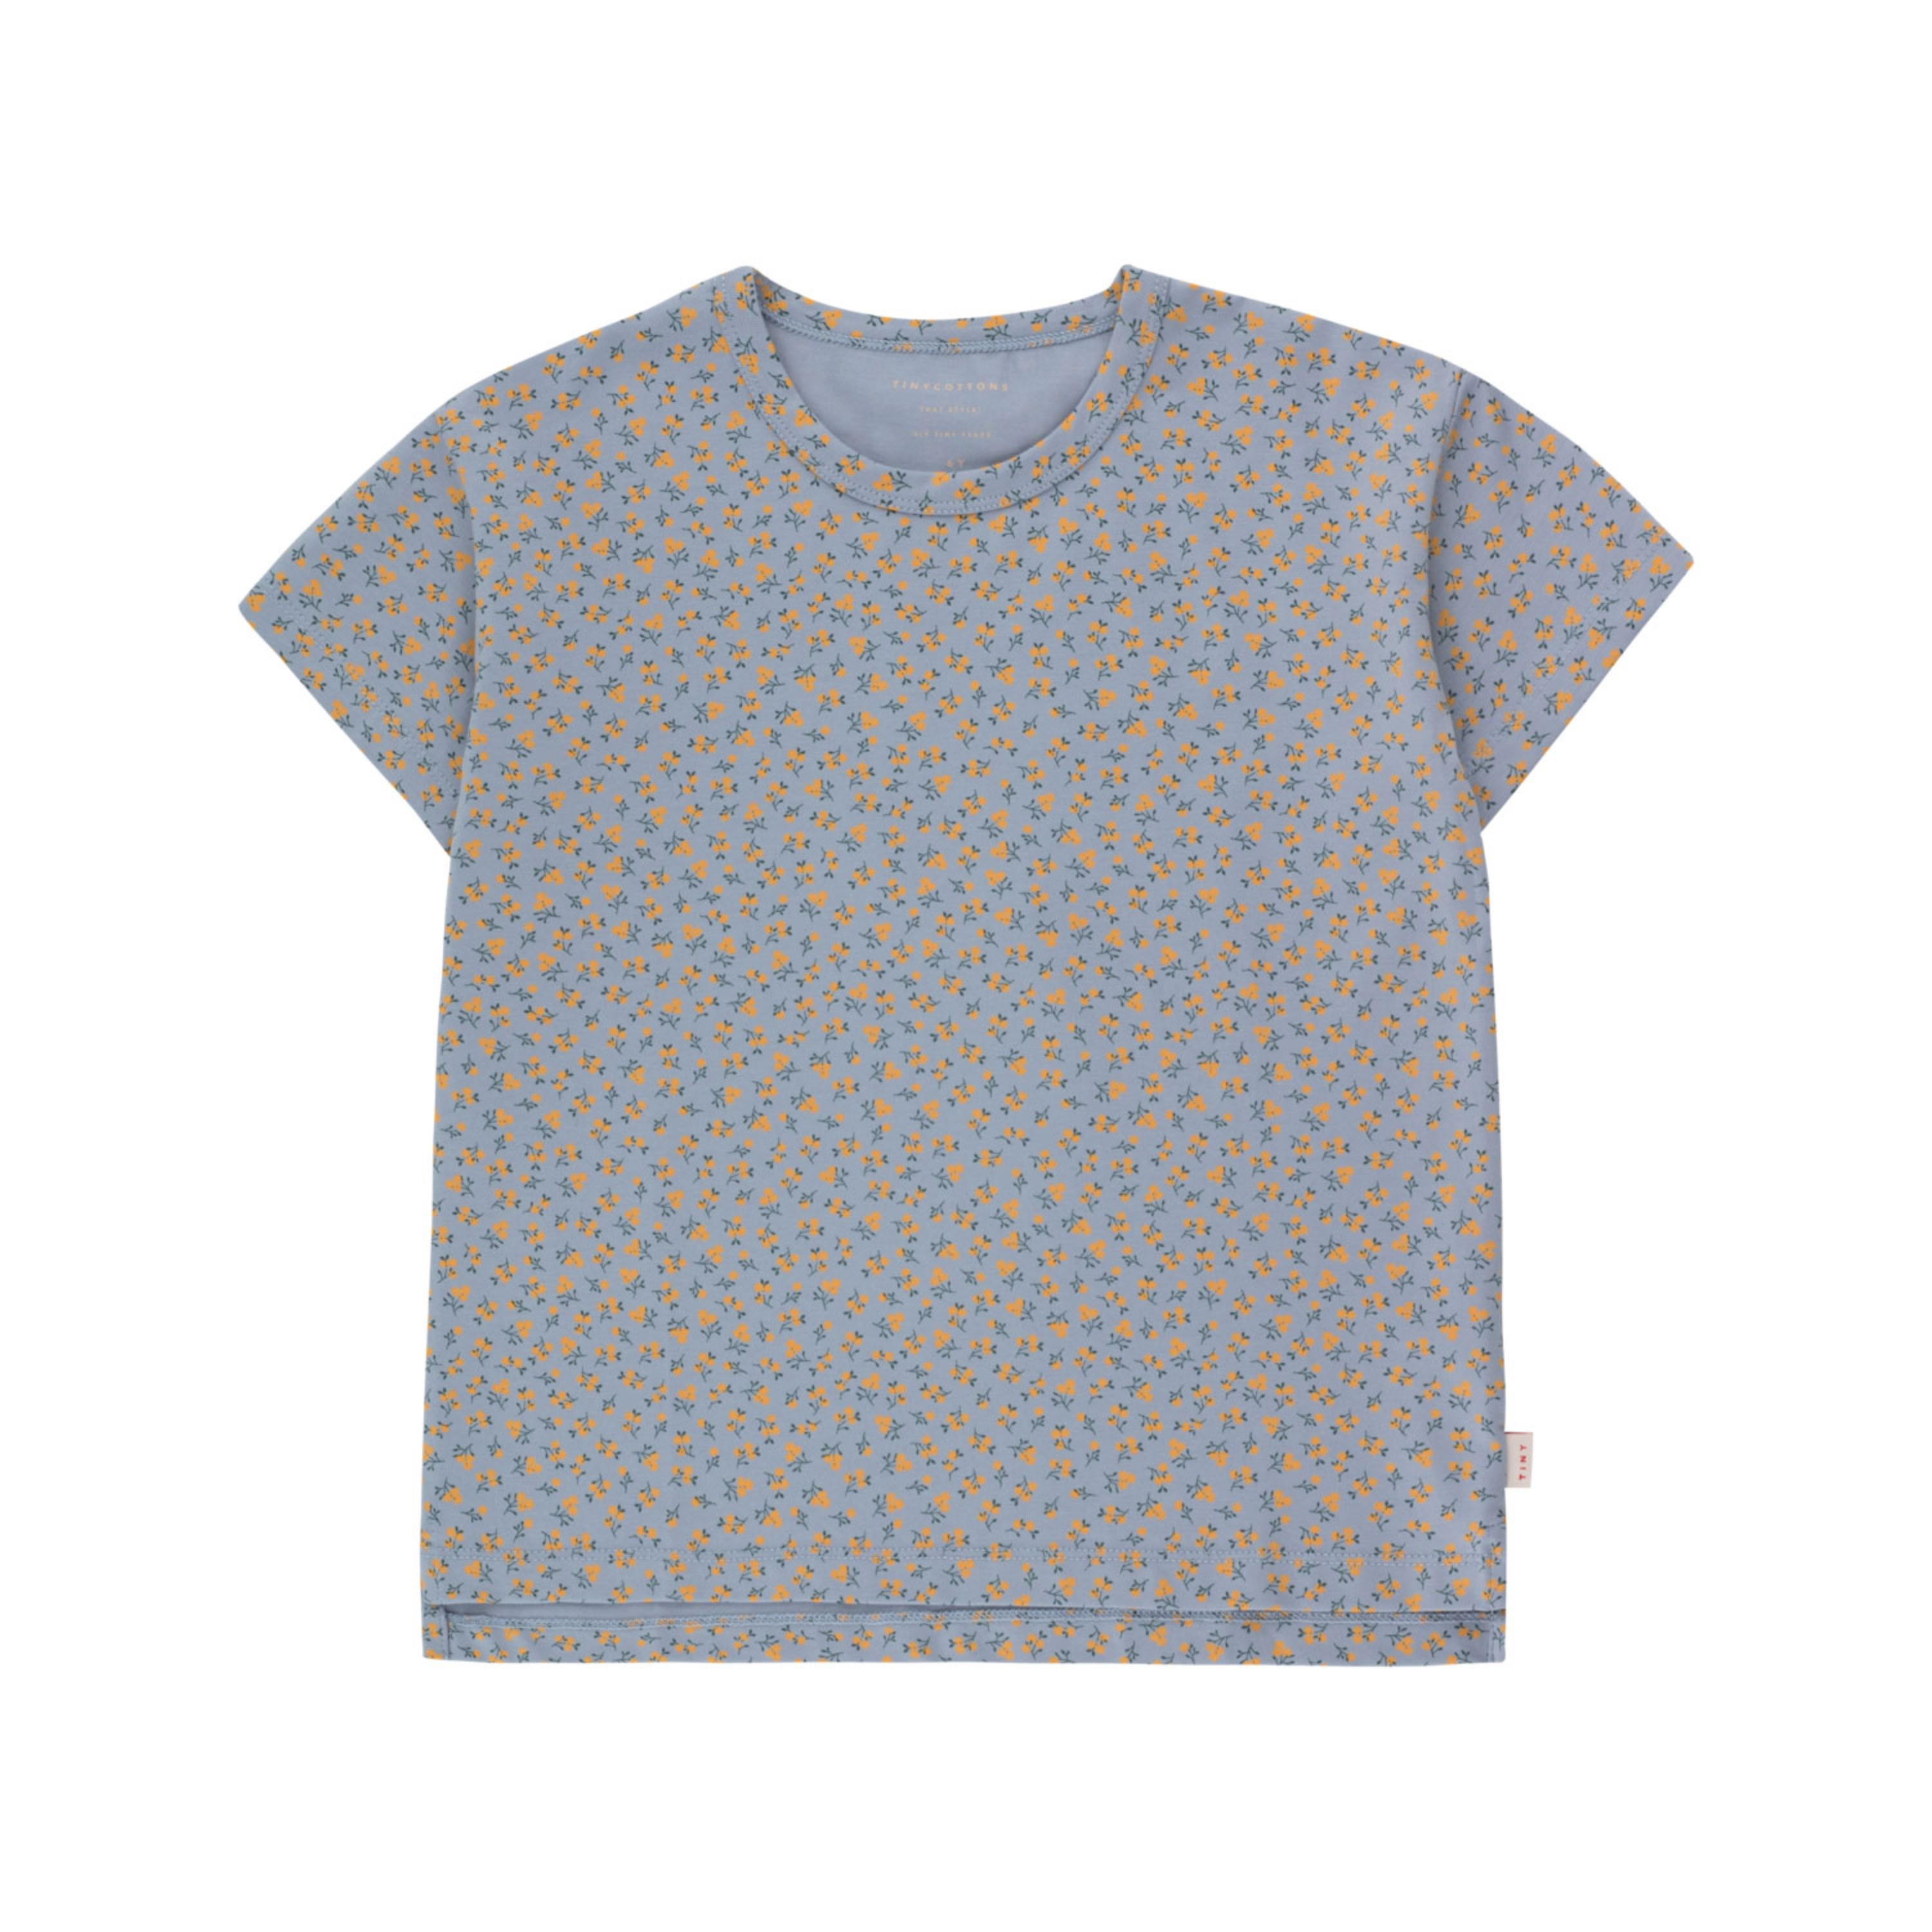 Tinycottons - Small Flowers T-Shirt